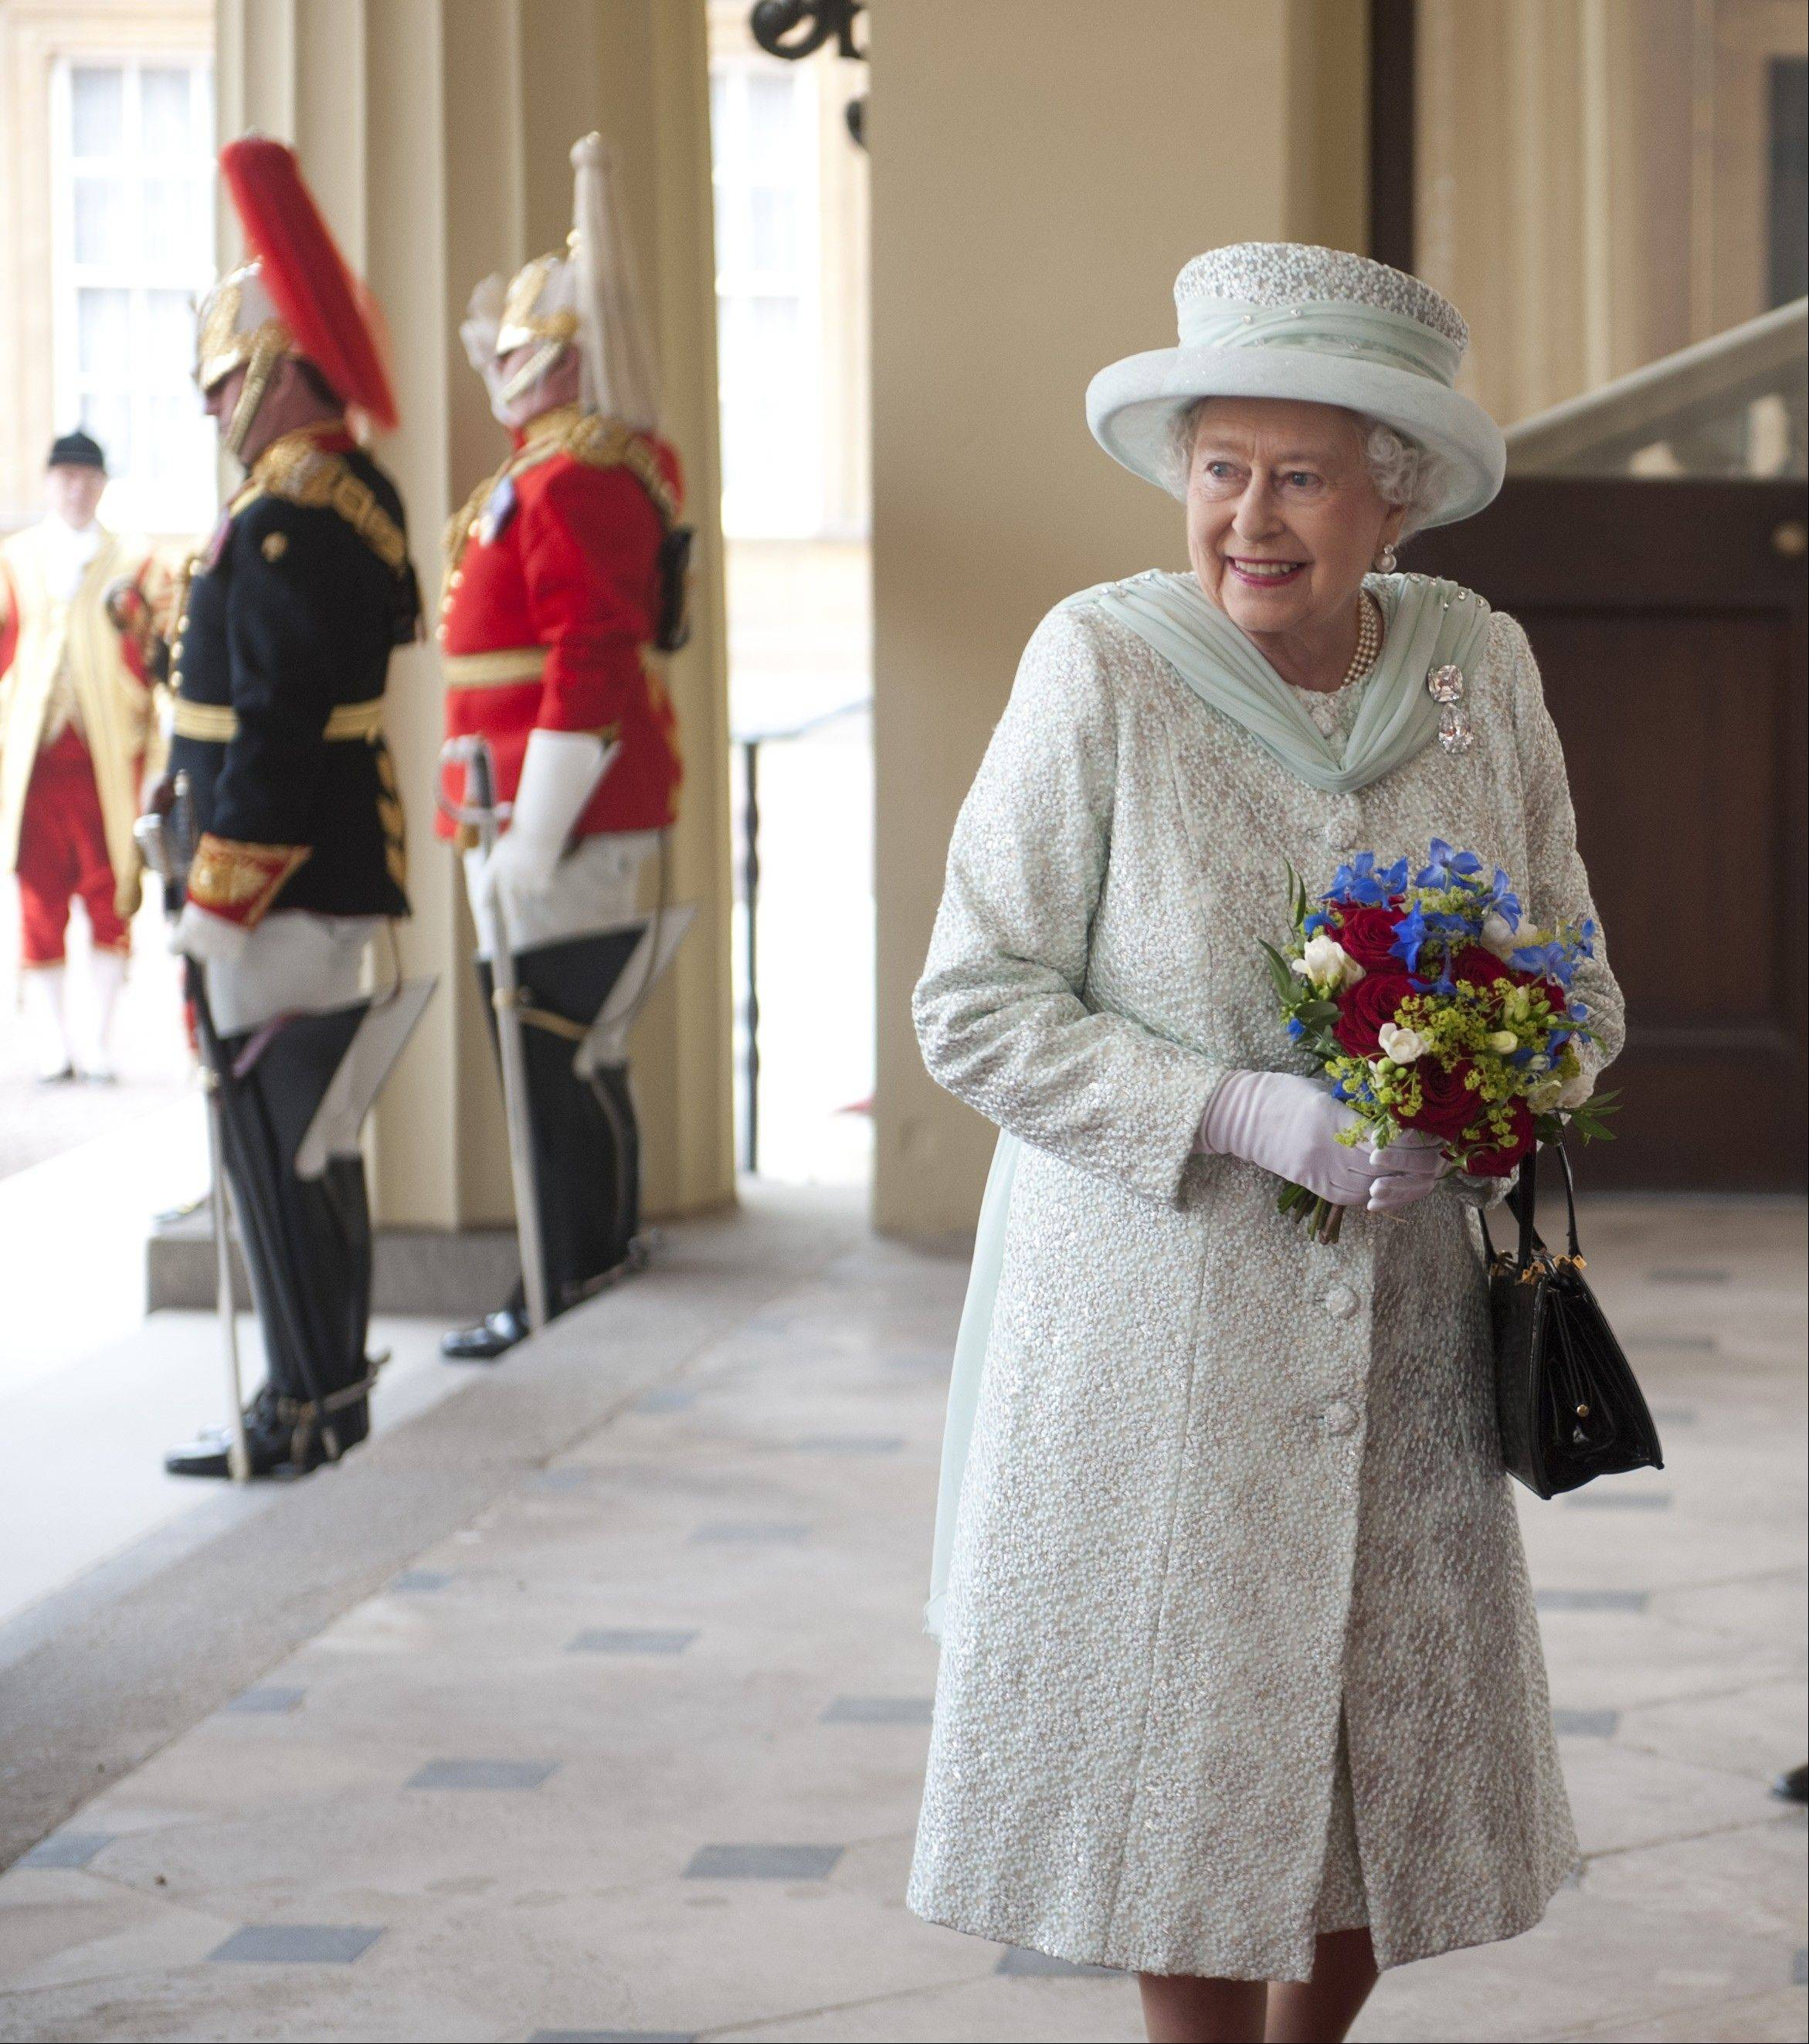 Britain's Queen Elizabeth II holds a bouquet of flowers as she returns to Buckingham Palace after attending a service of thanksgiving and a lunch in honour of the Diamond Jubilee in London,Tuesday June 5, 2012.